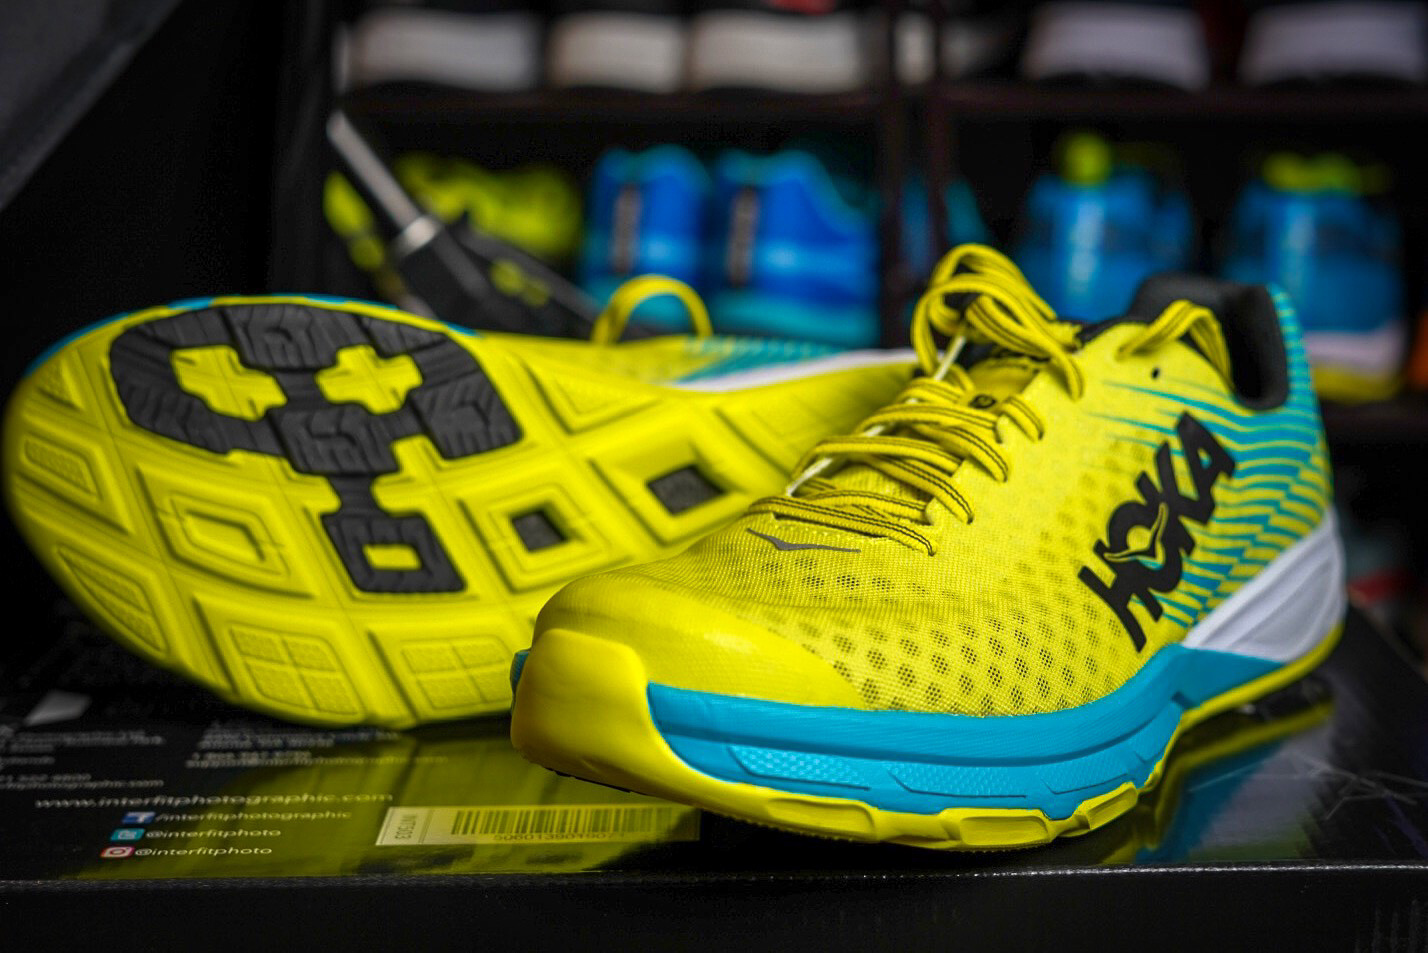 5d7abd32210f0 Hoka One One Carbon Rocket Performance Review » Believe in the Run